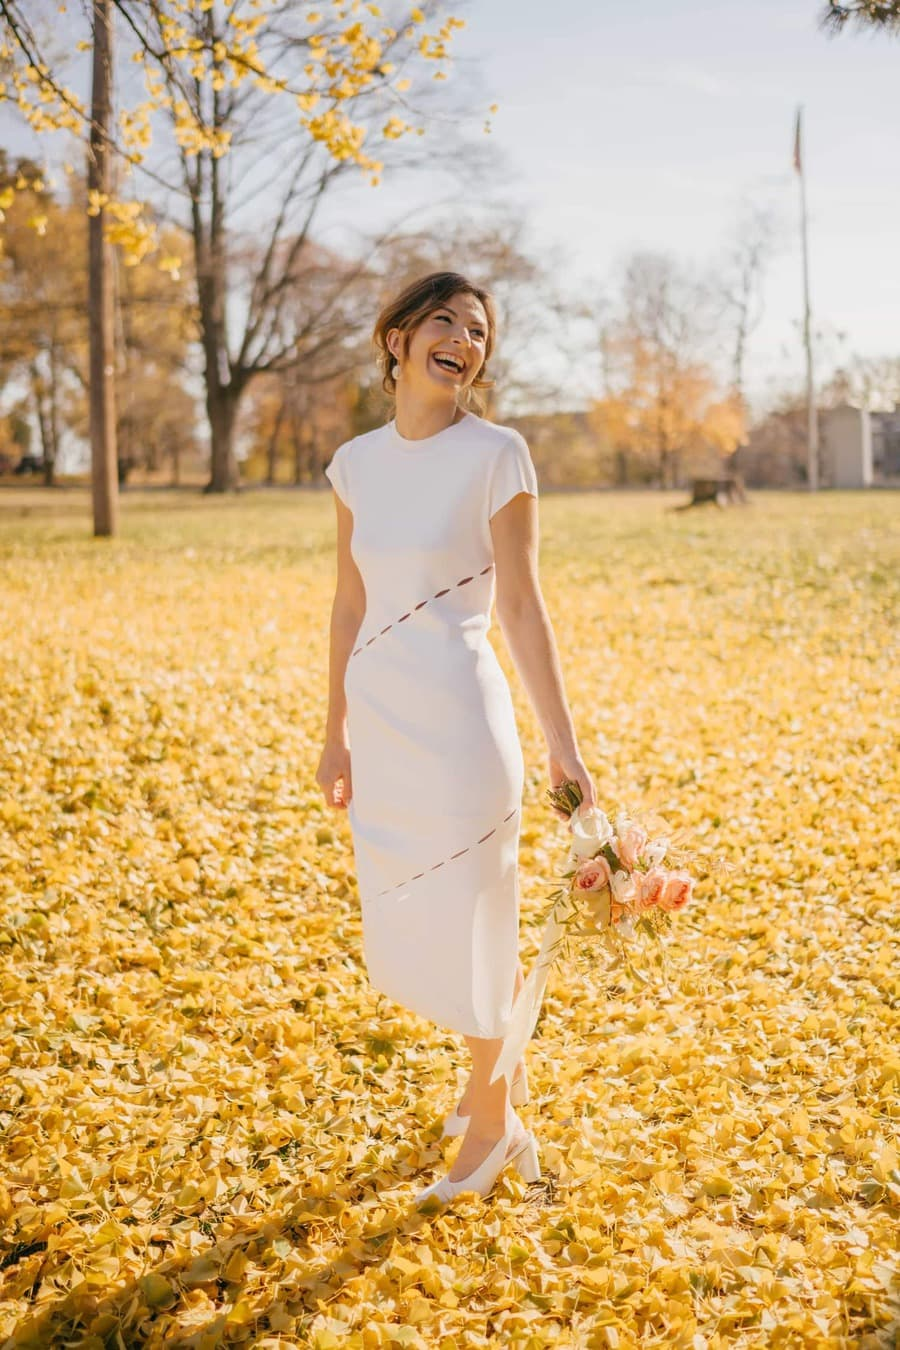 Bride in wedding dress and holding small bouquet by side smiles and laughs as she looks away from the camera while standing in fall leaves.